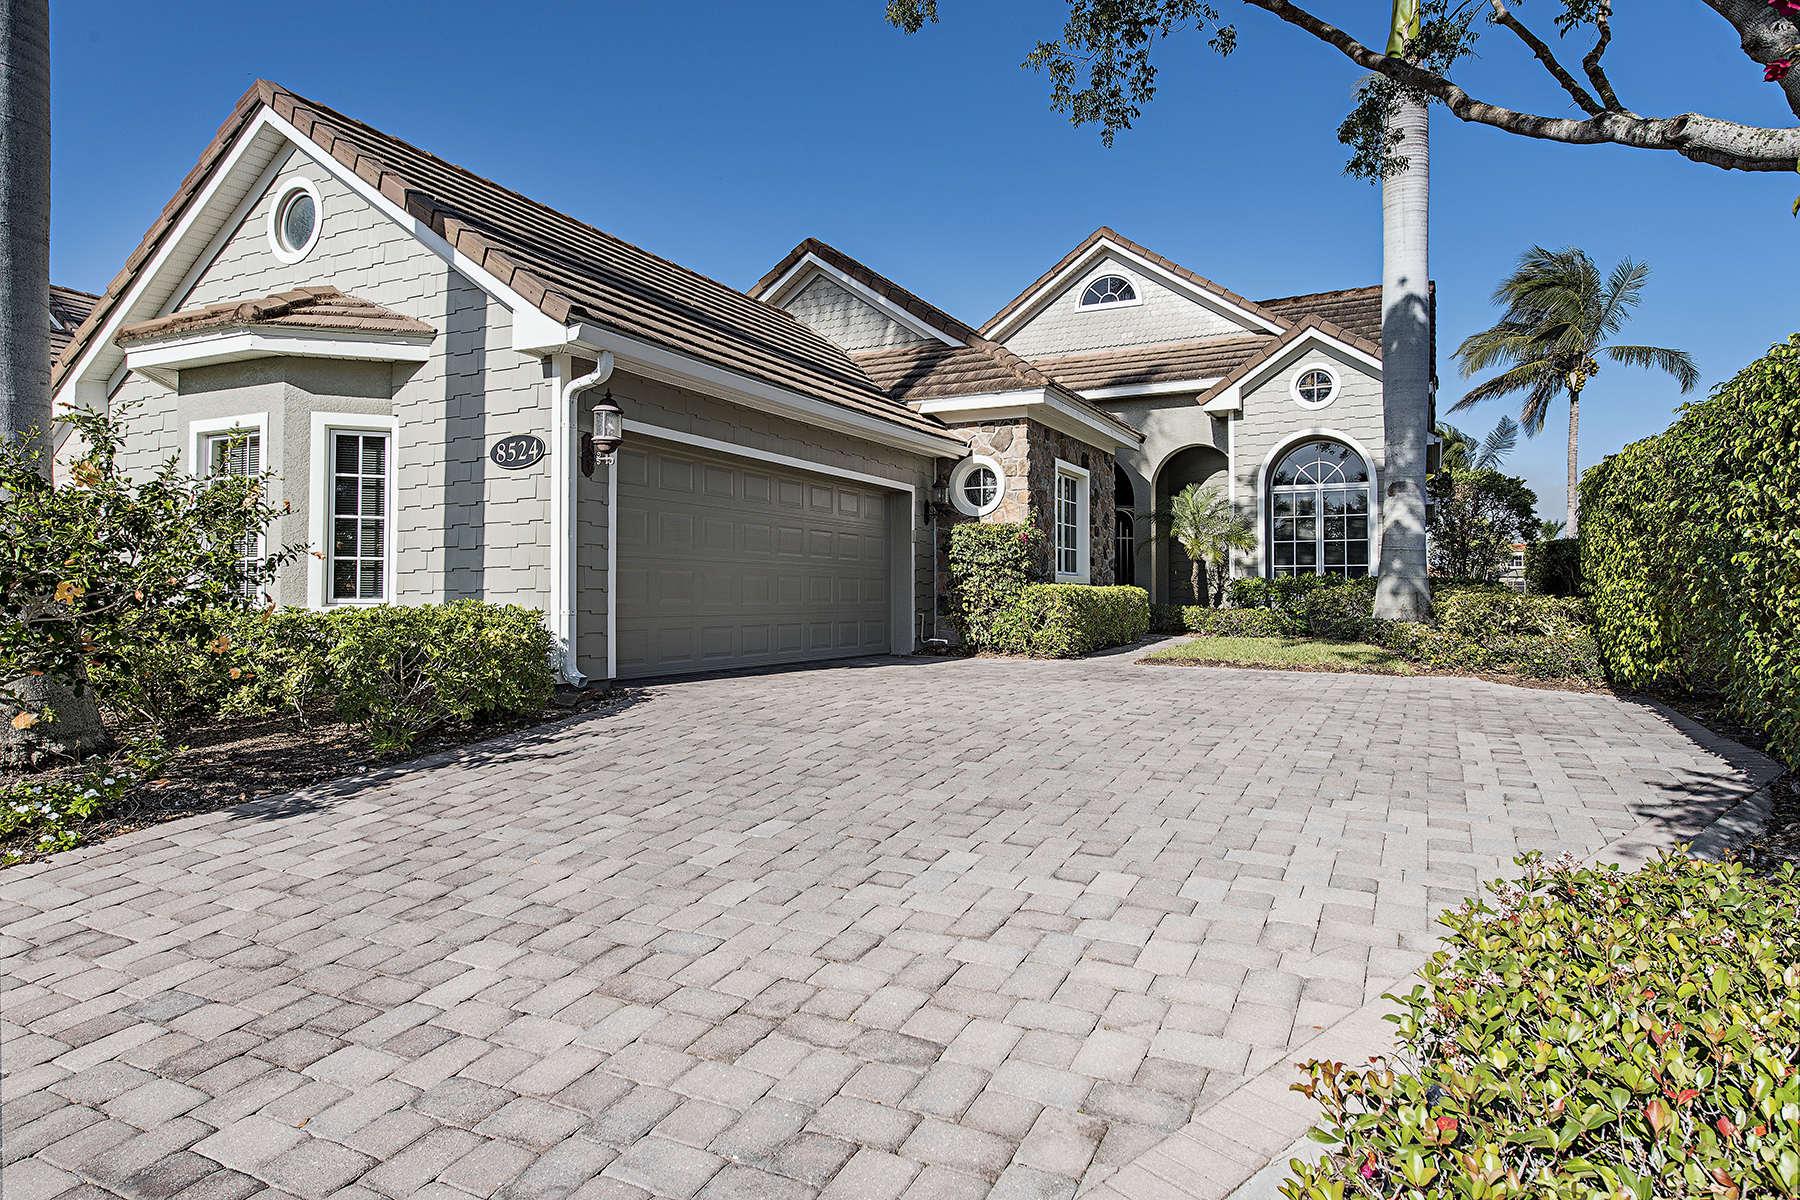 Single Family Home for Sale at FIDDLERS CREEK 8524 Mallards Pt, Naples, Florida 34114 United States